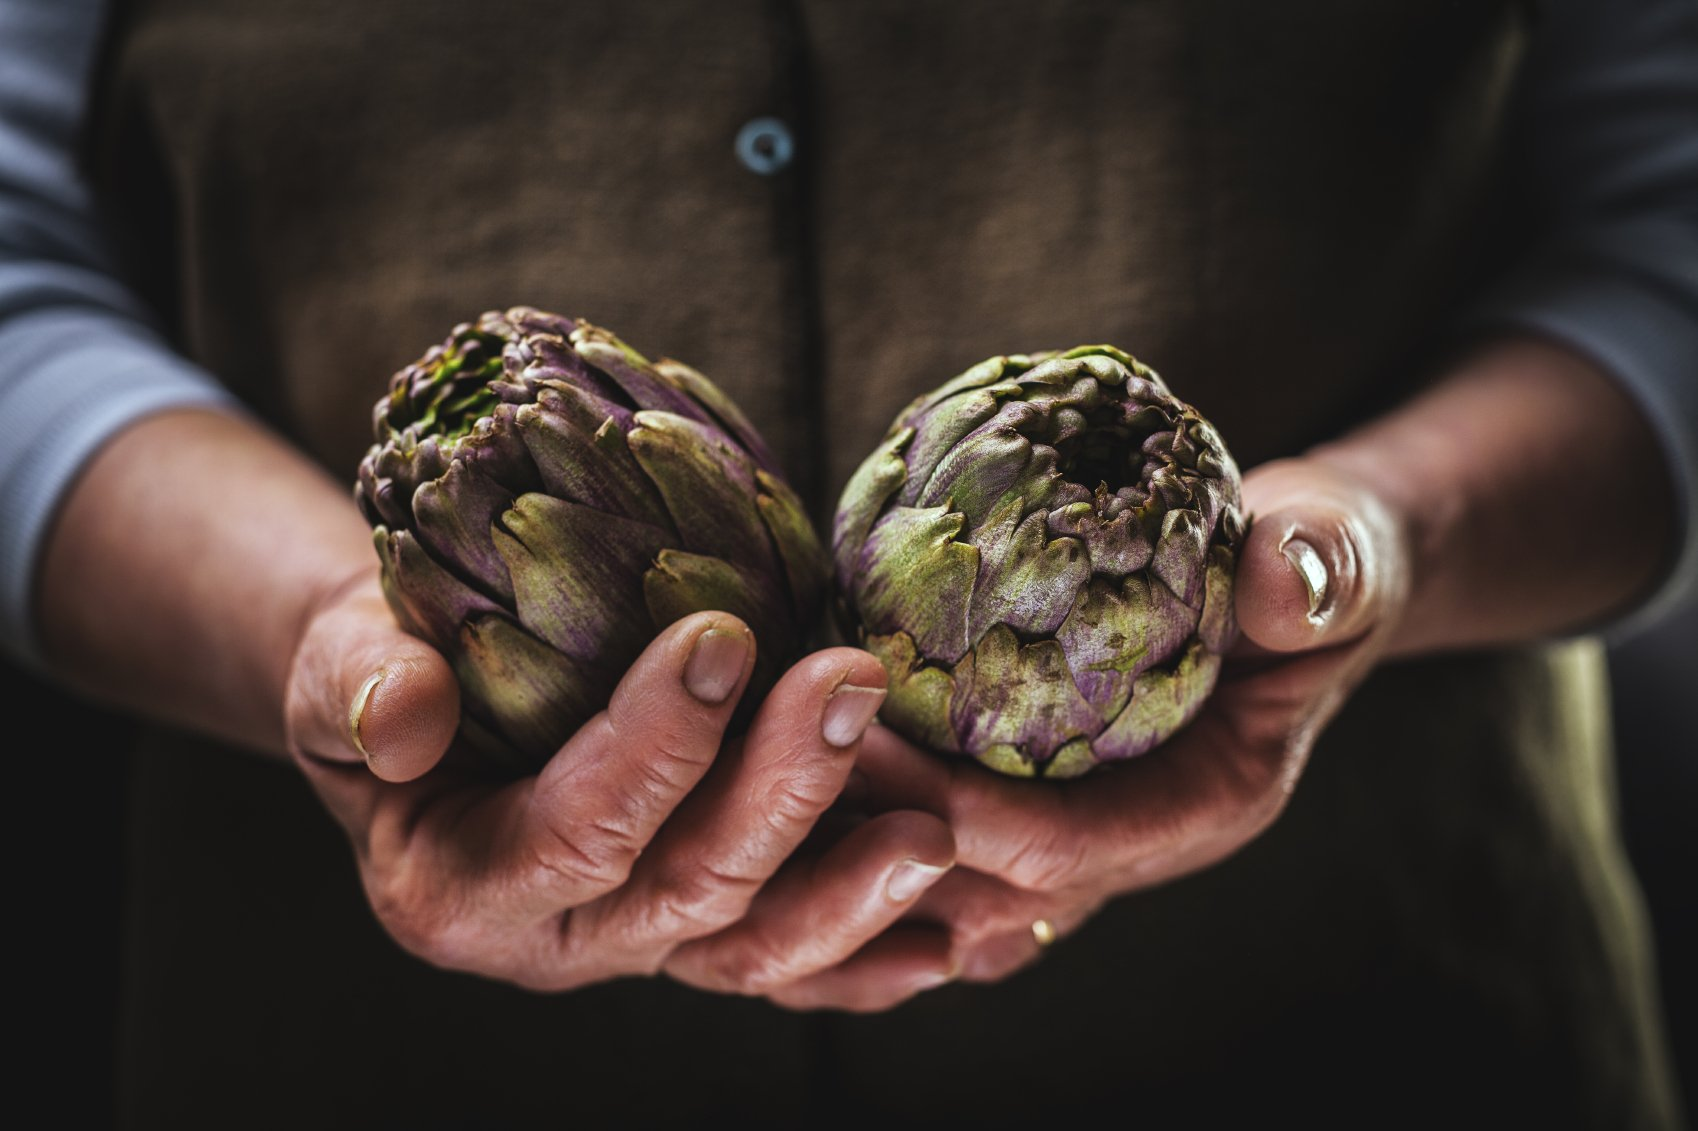 a woman holds two artichokes in her hands